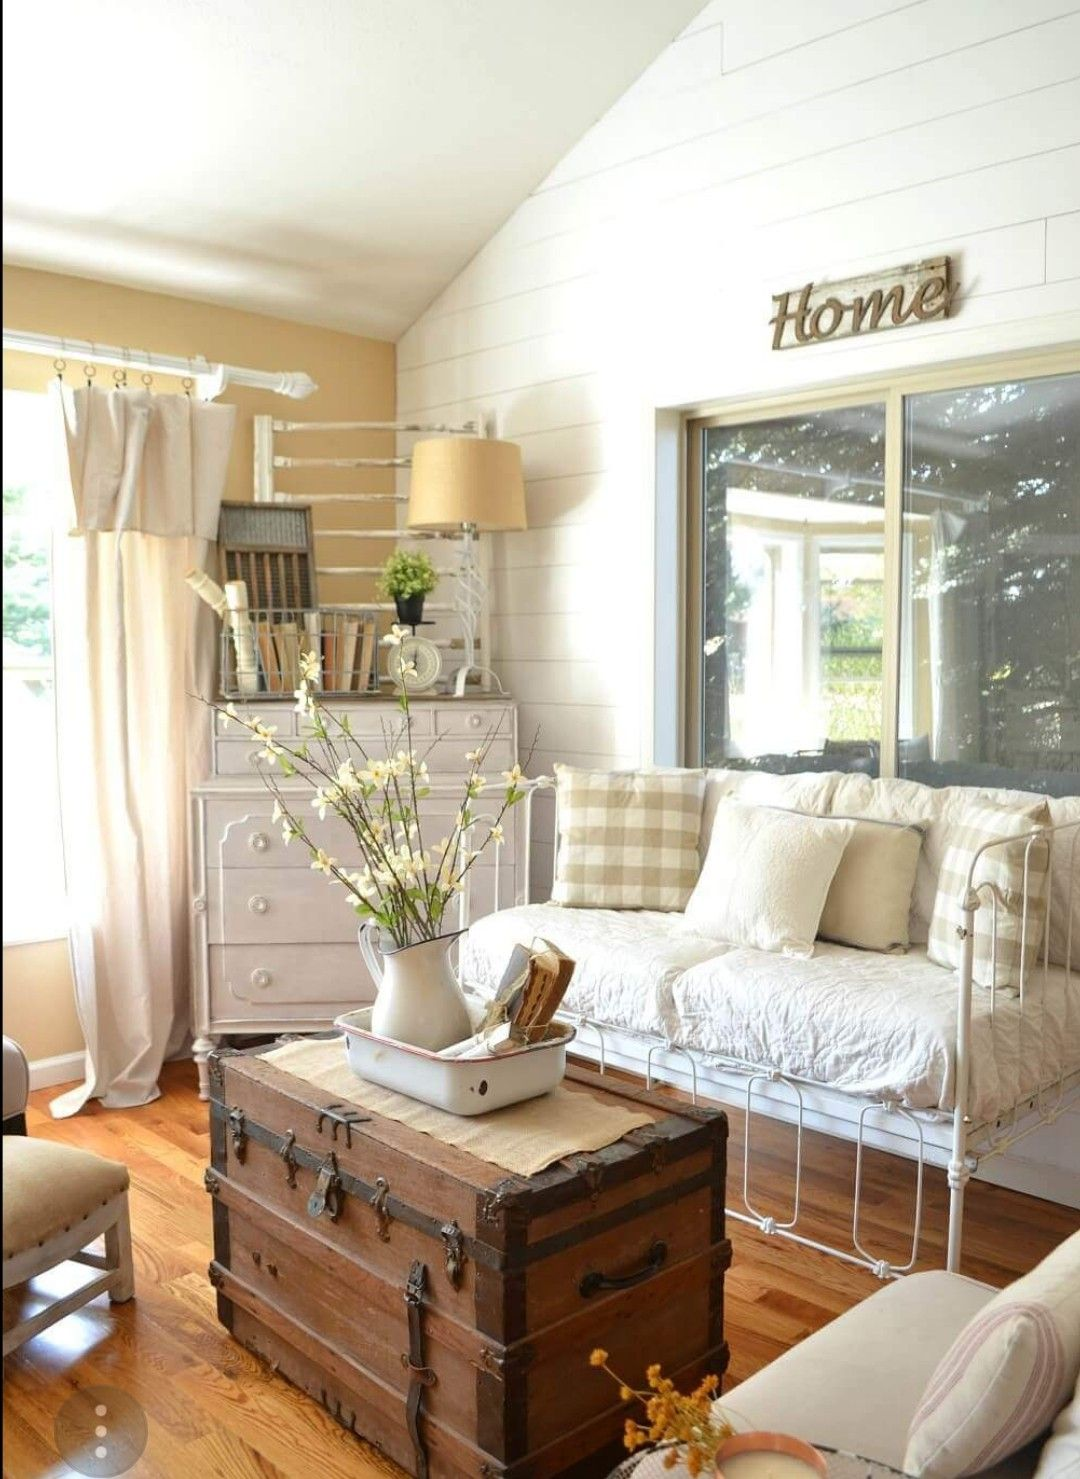 Pin by Foxy Boop on Ambitious homemaker | Vintage farmhouse ...